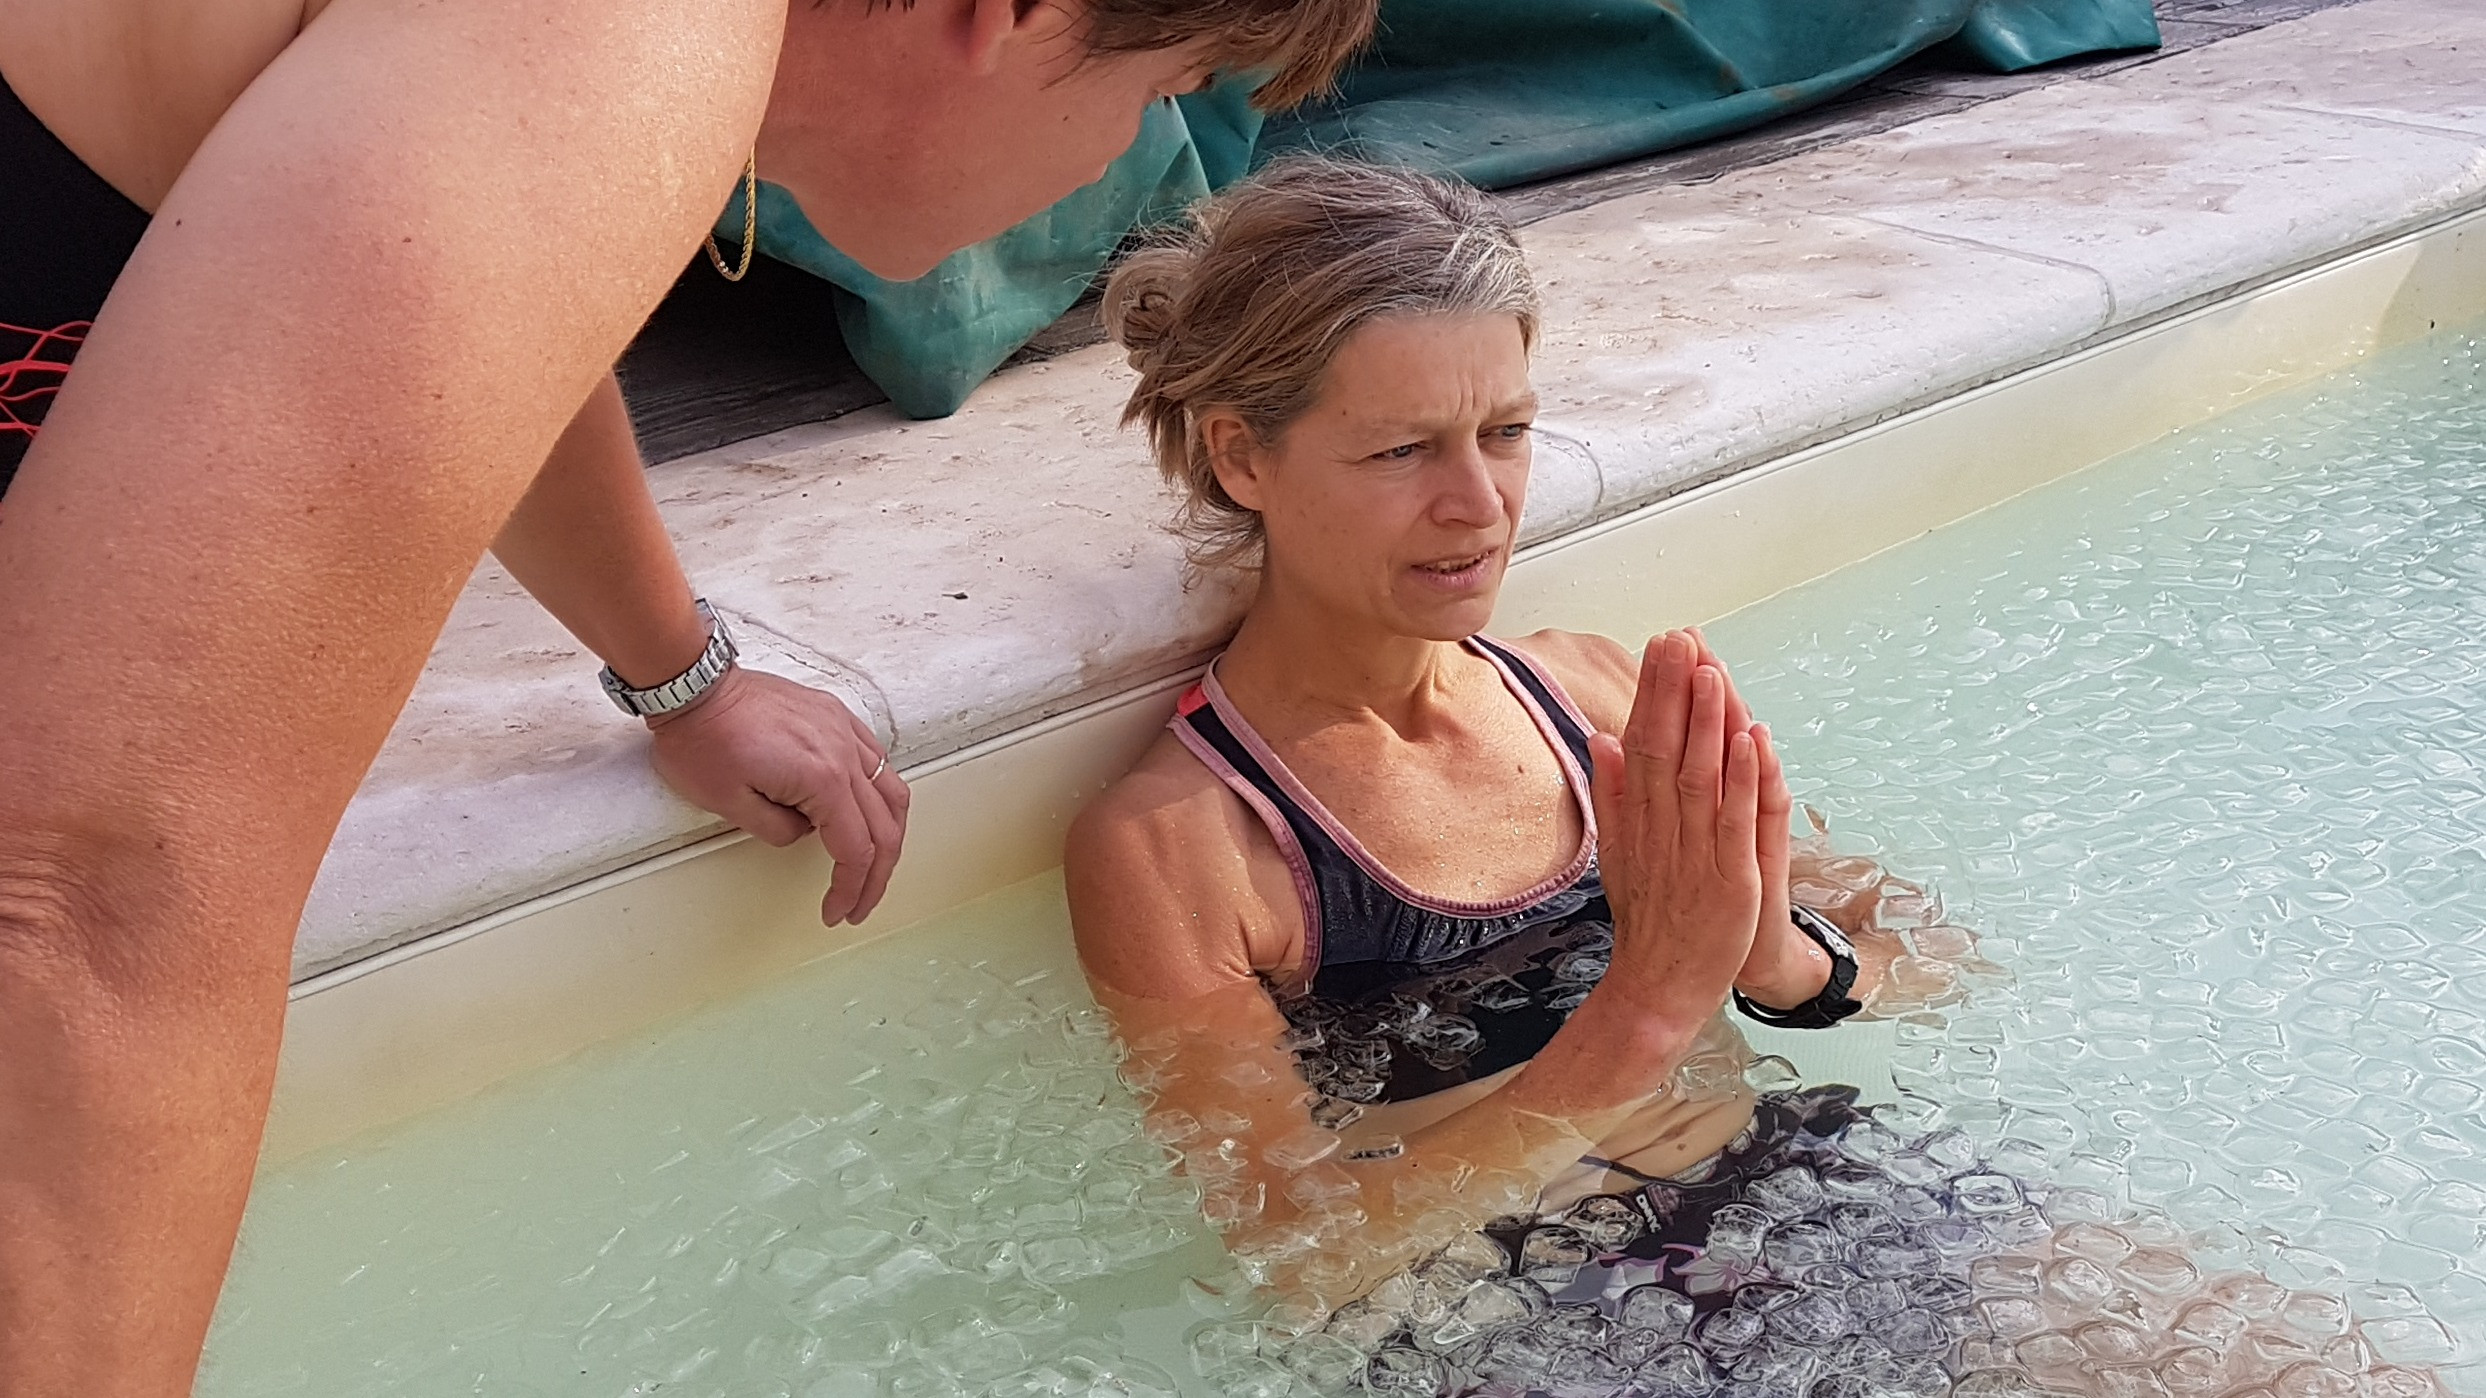 Image 2 of 5 - Experience Ice Bath to get an impression of WHM Fundamentals Workshop at Nieuwegein